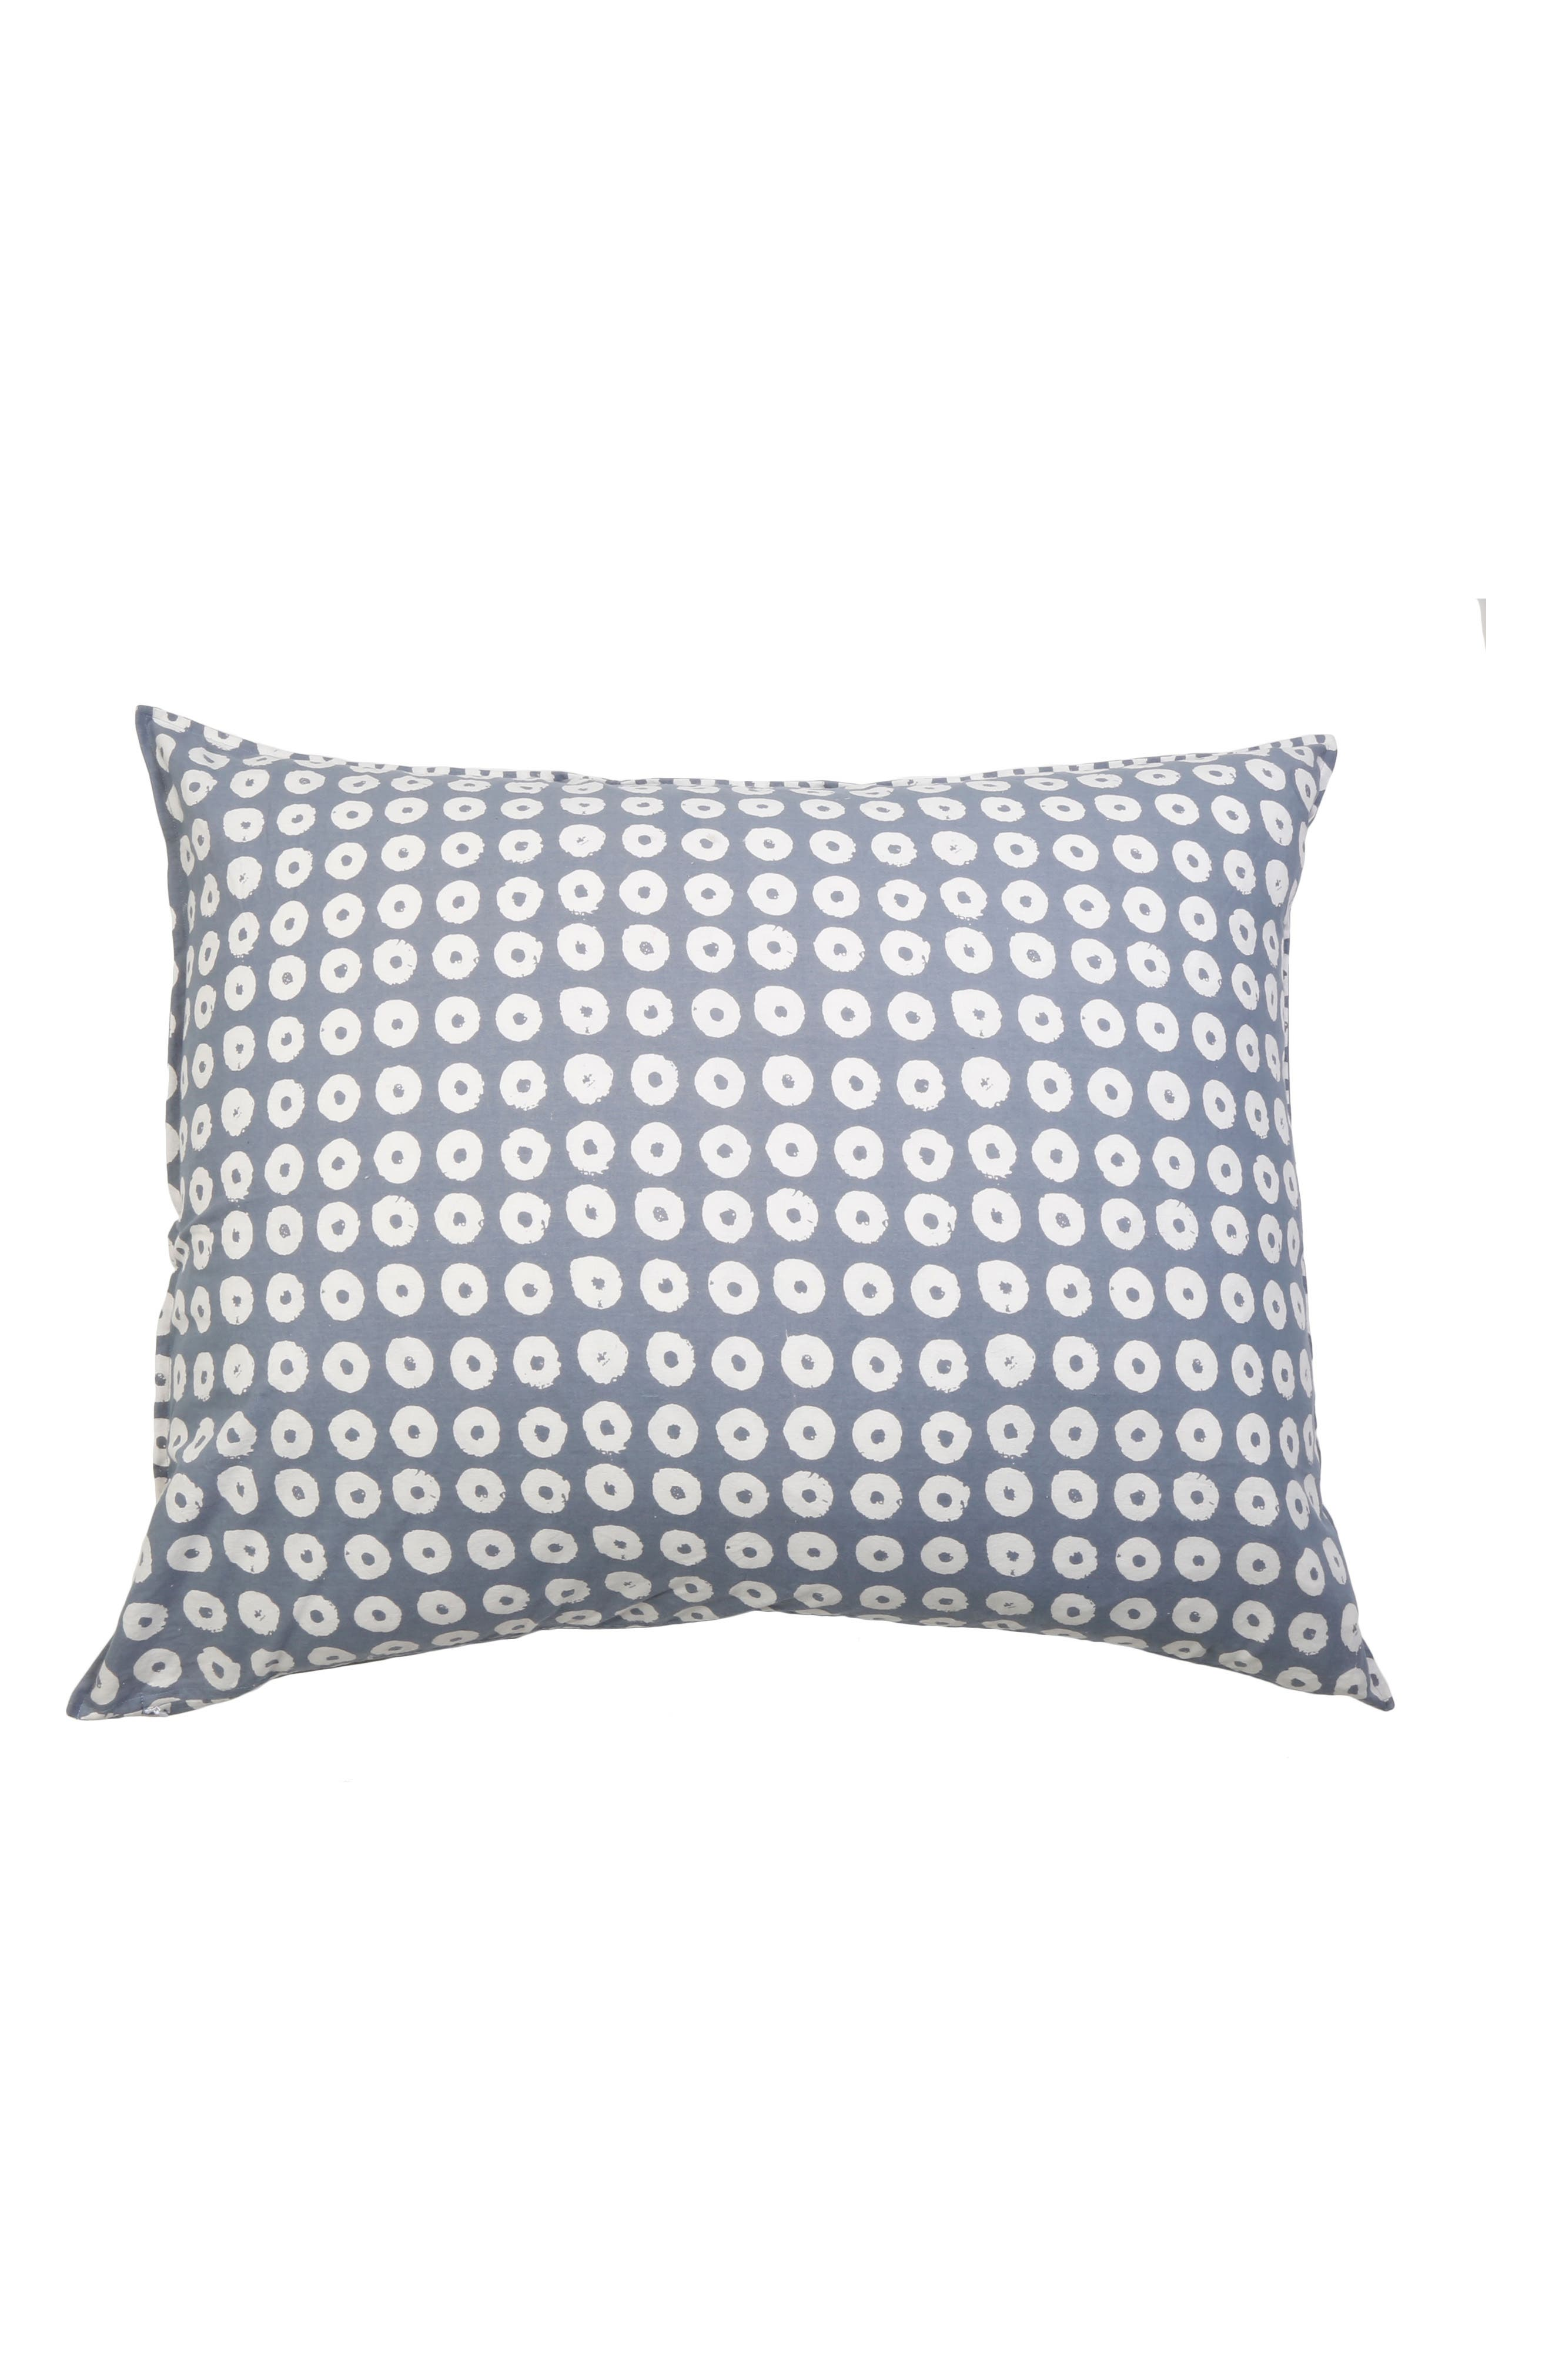 Alternate Image 1 Selected - Pom Pom at Home Tootsie Accent Pillow